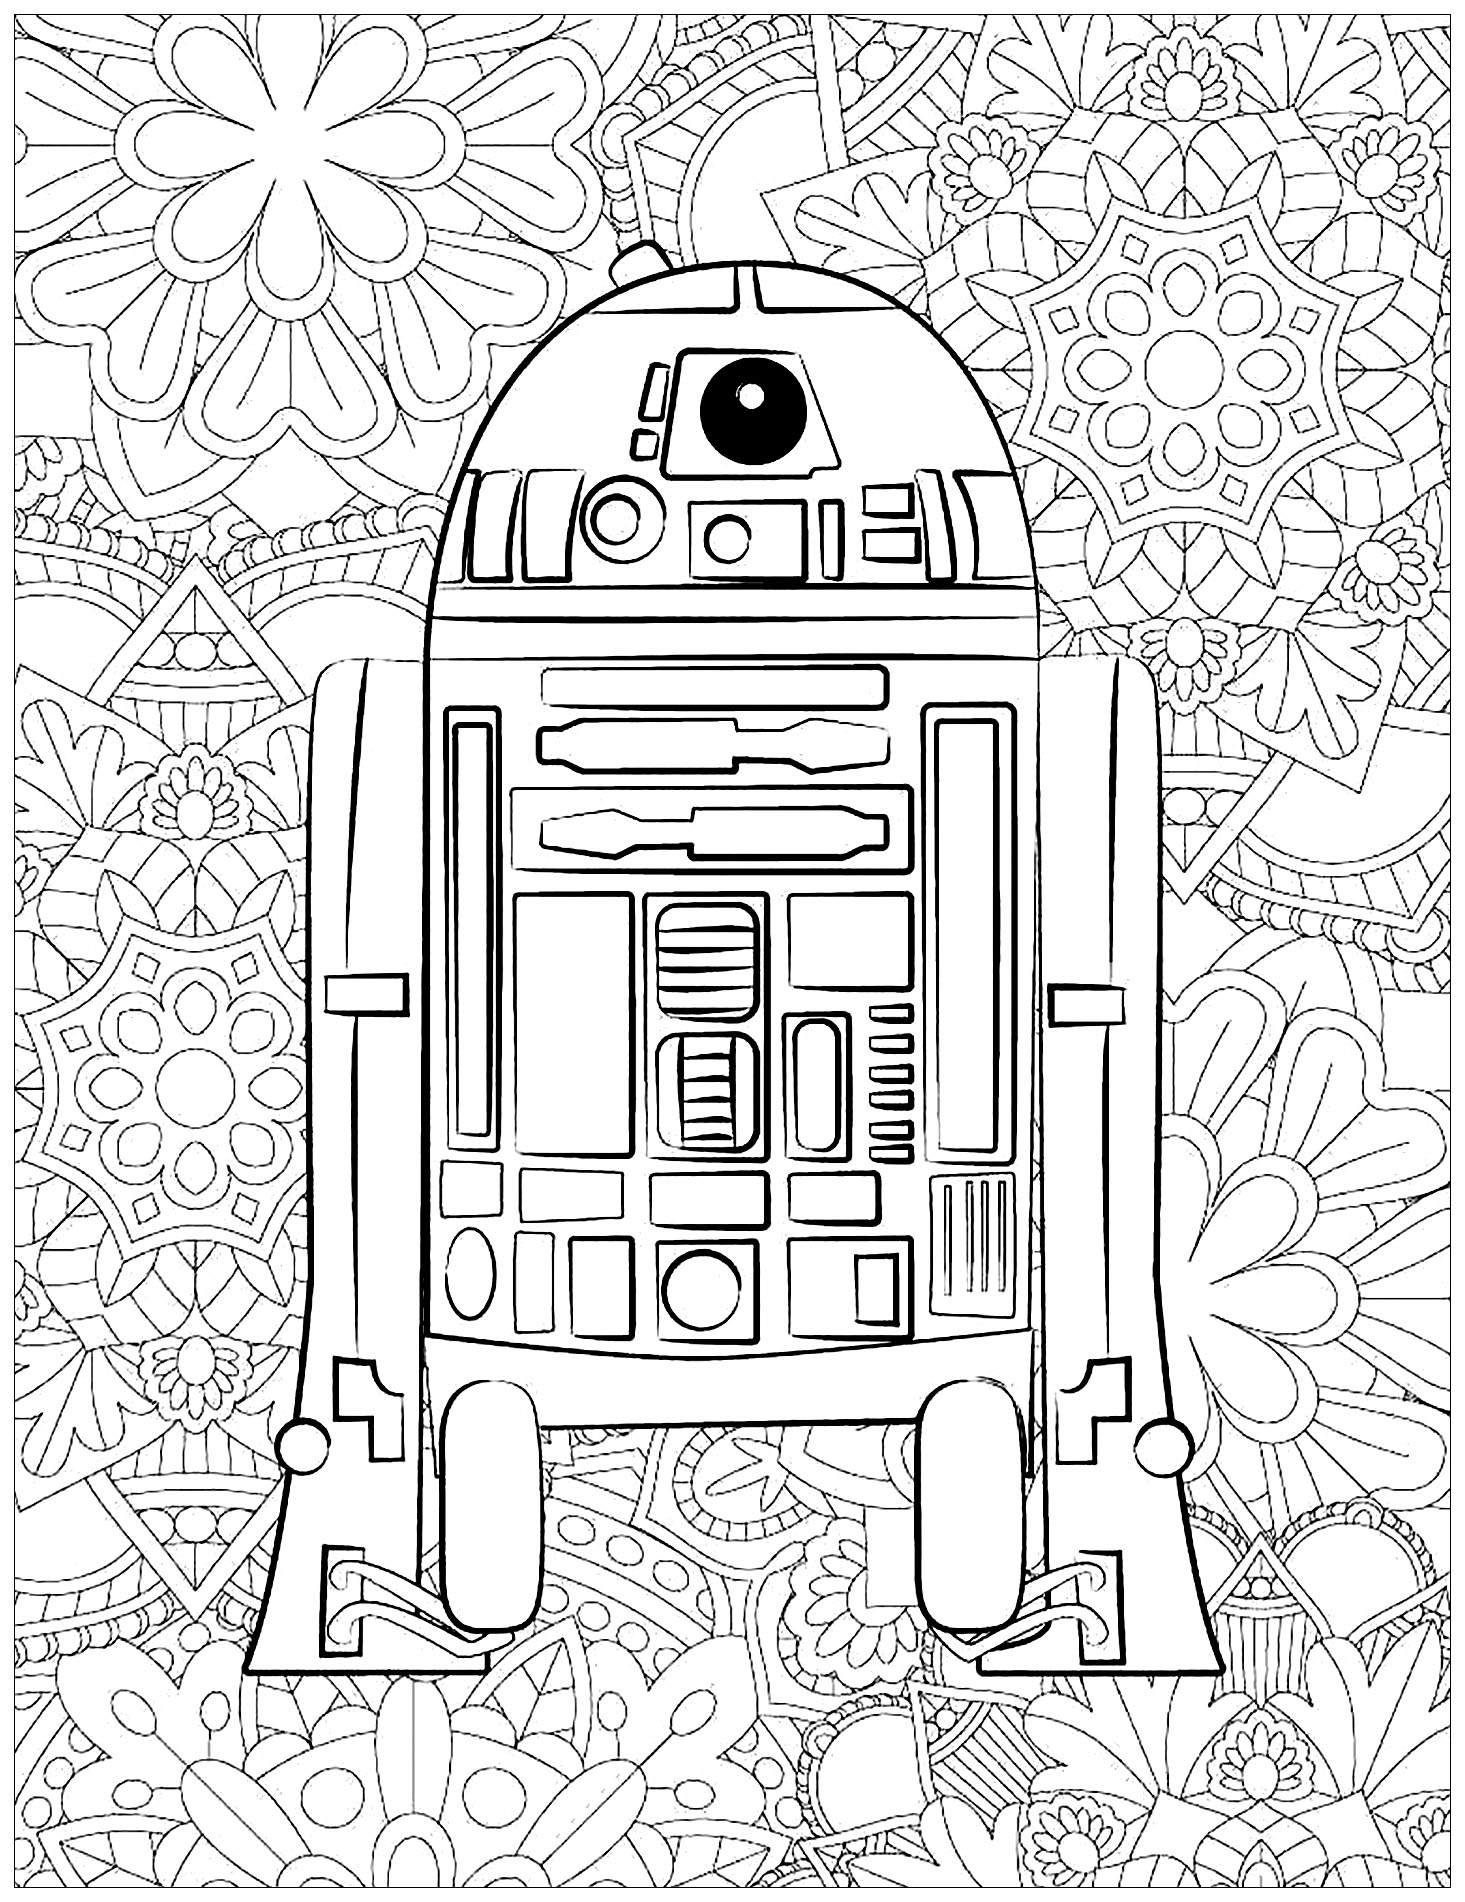 Easy free Star Wars coloring page to download